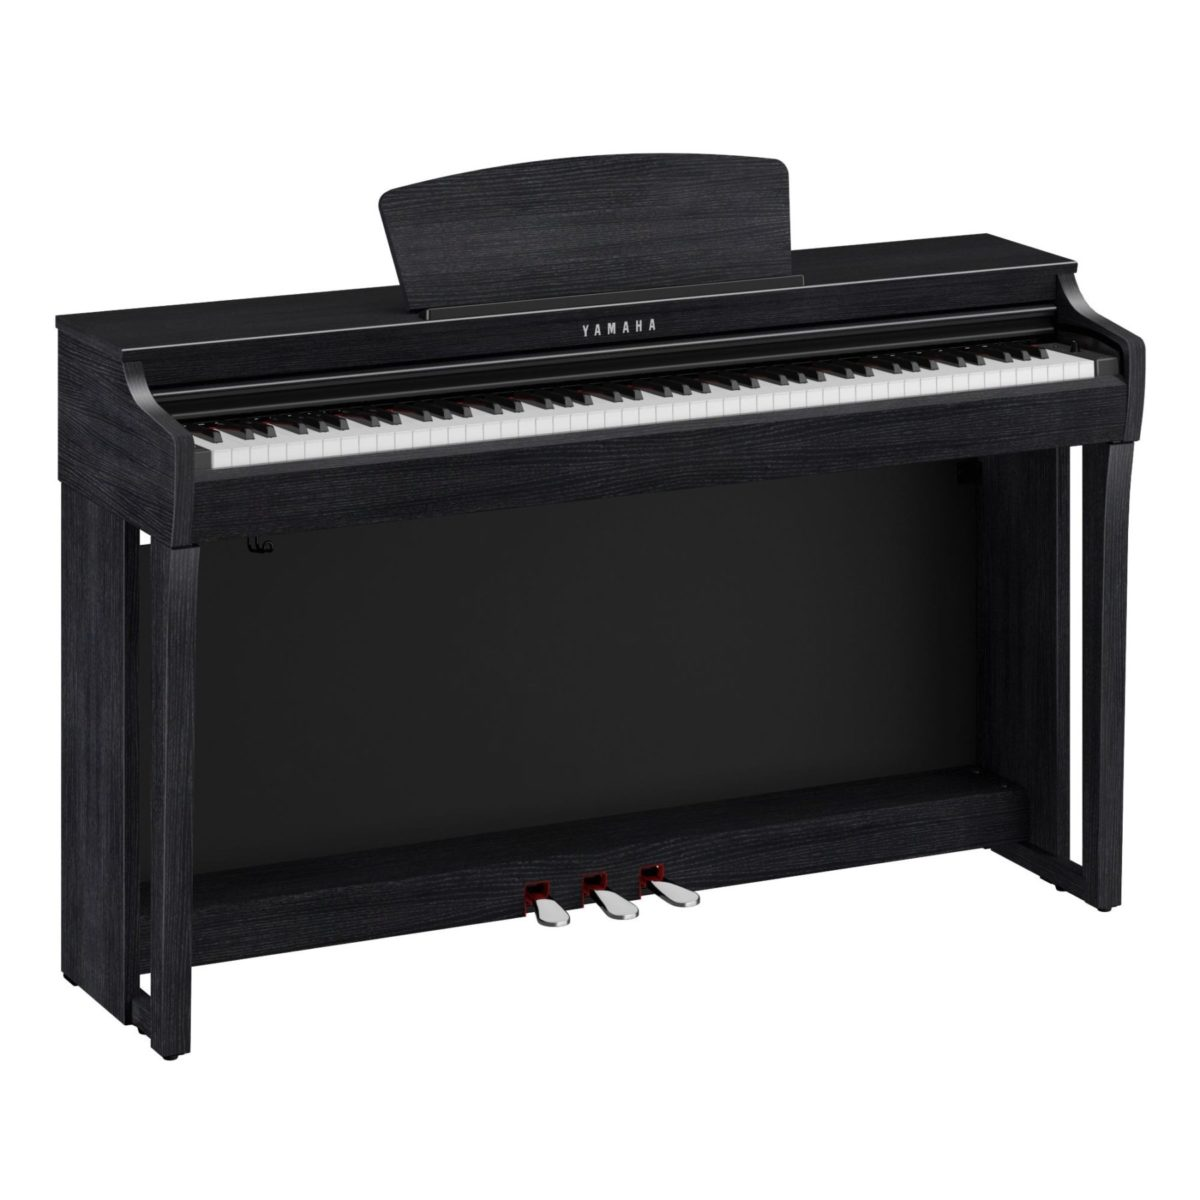 Yamaha CLP-725 B Digital Piano